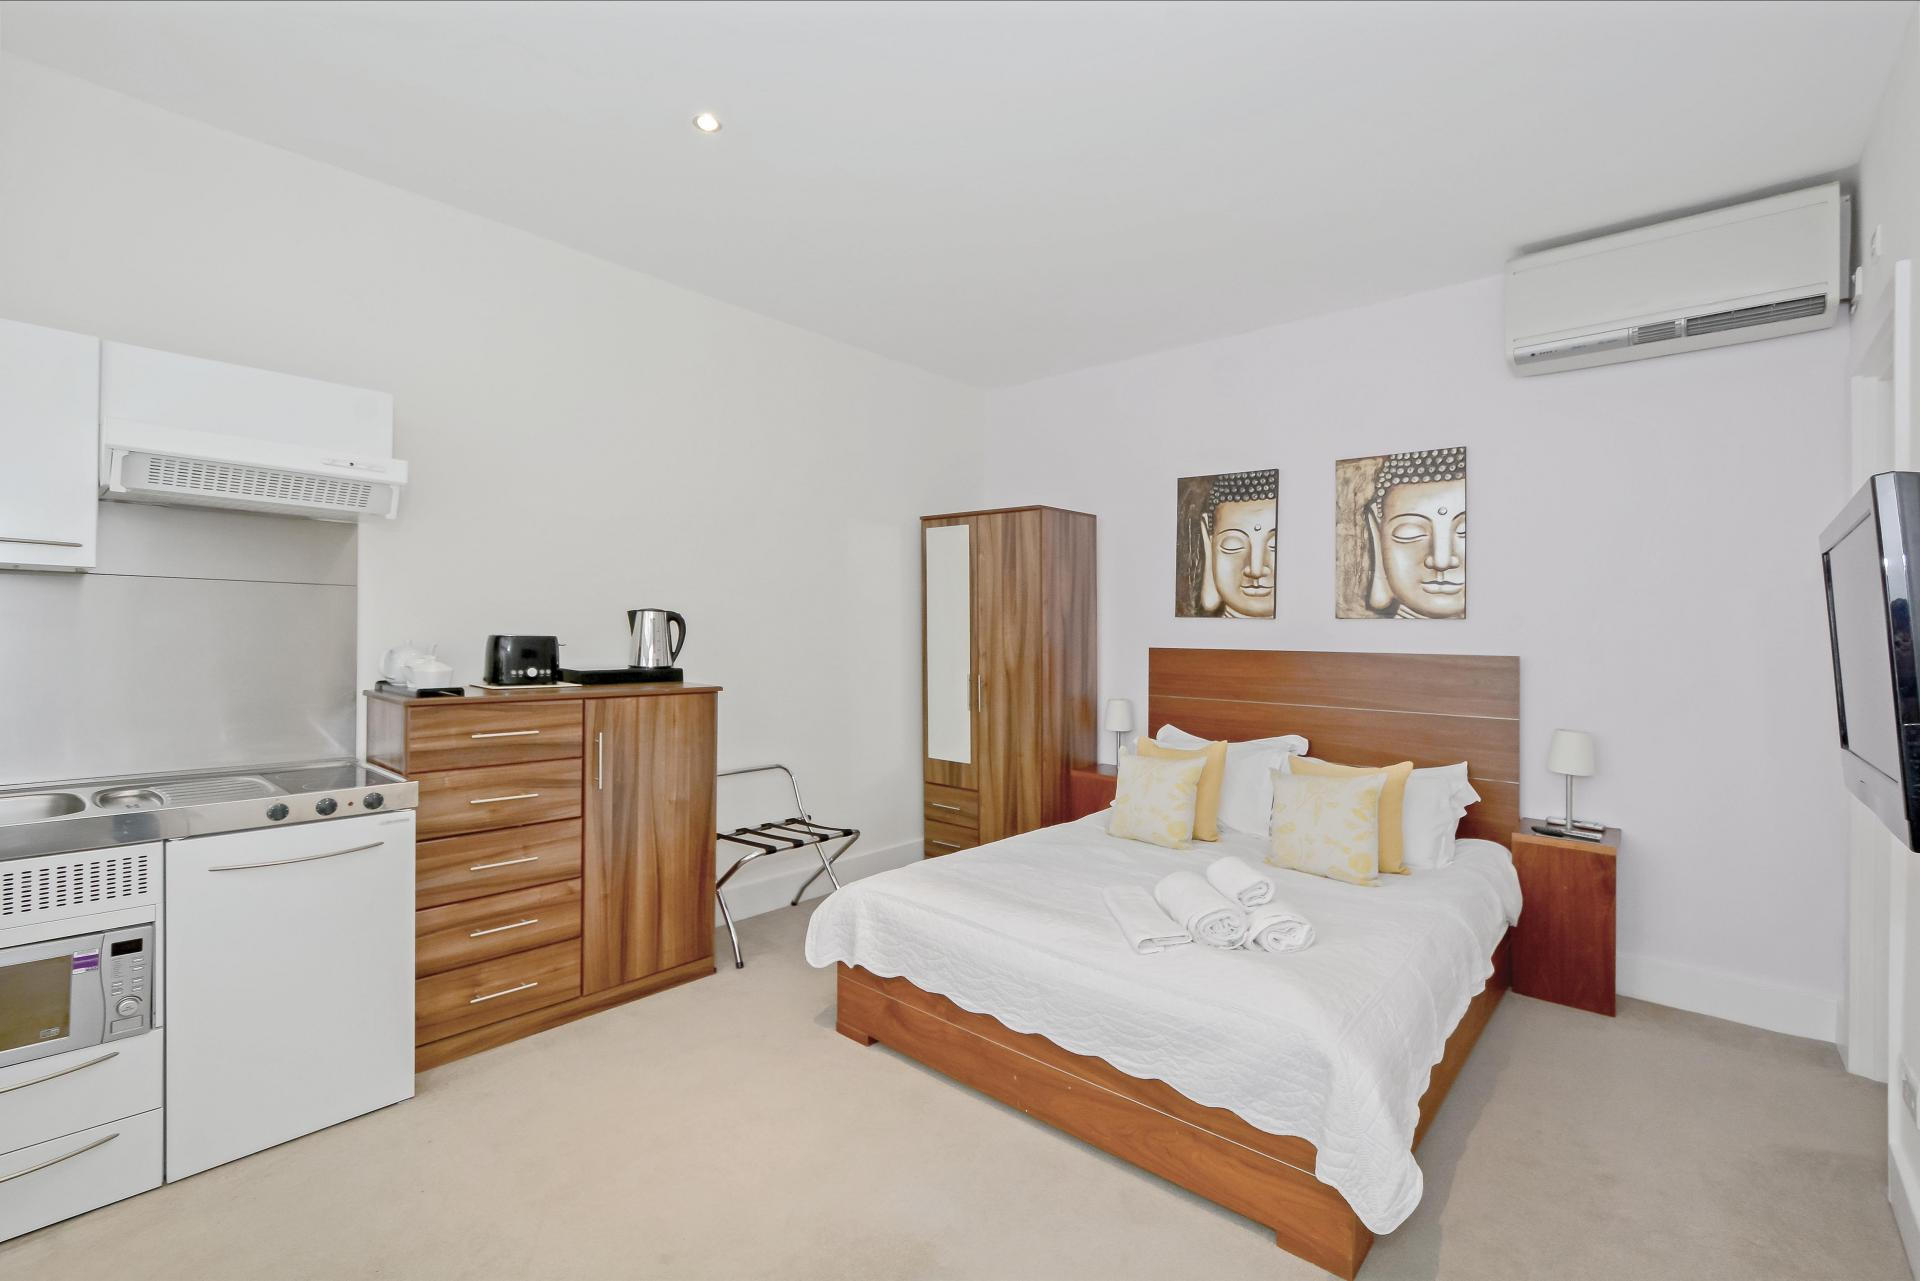 Bed at LBS Apartments, Victoria, London